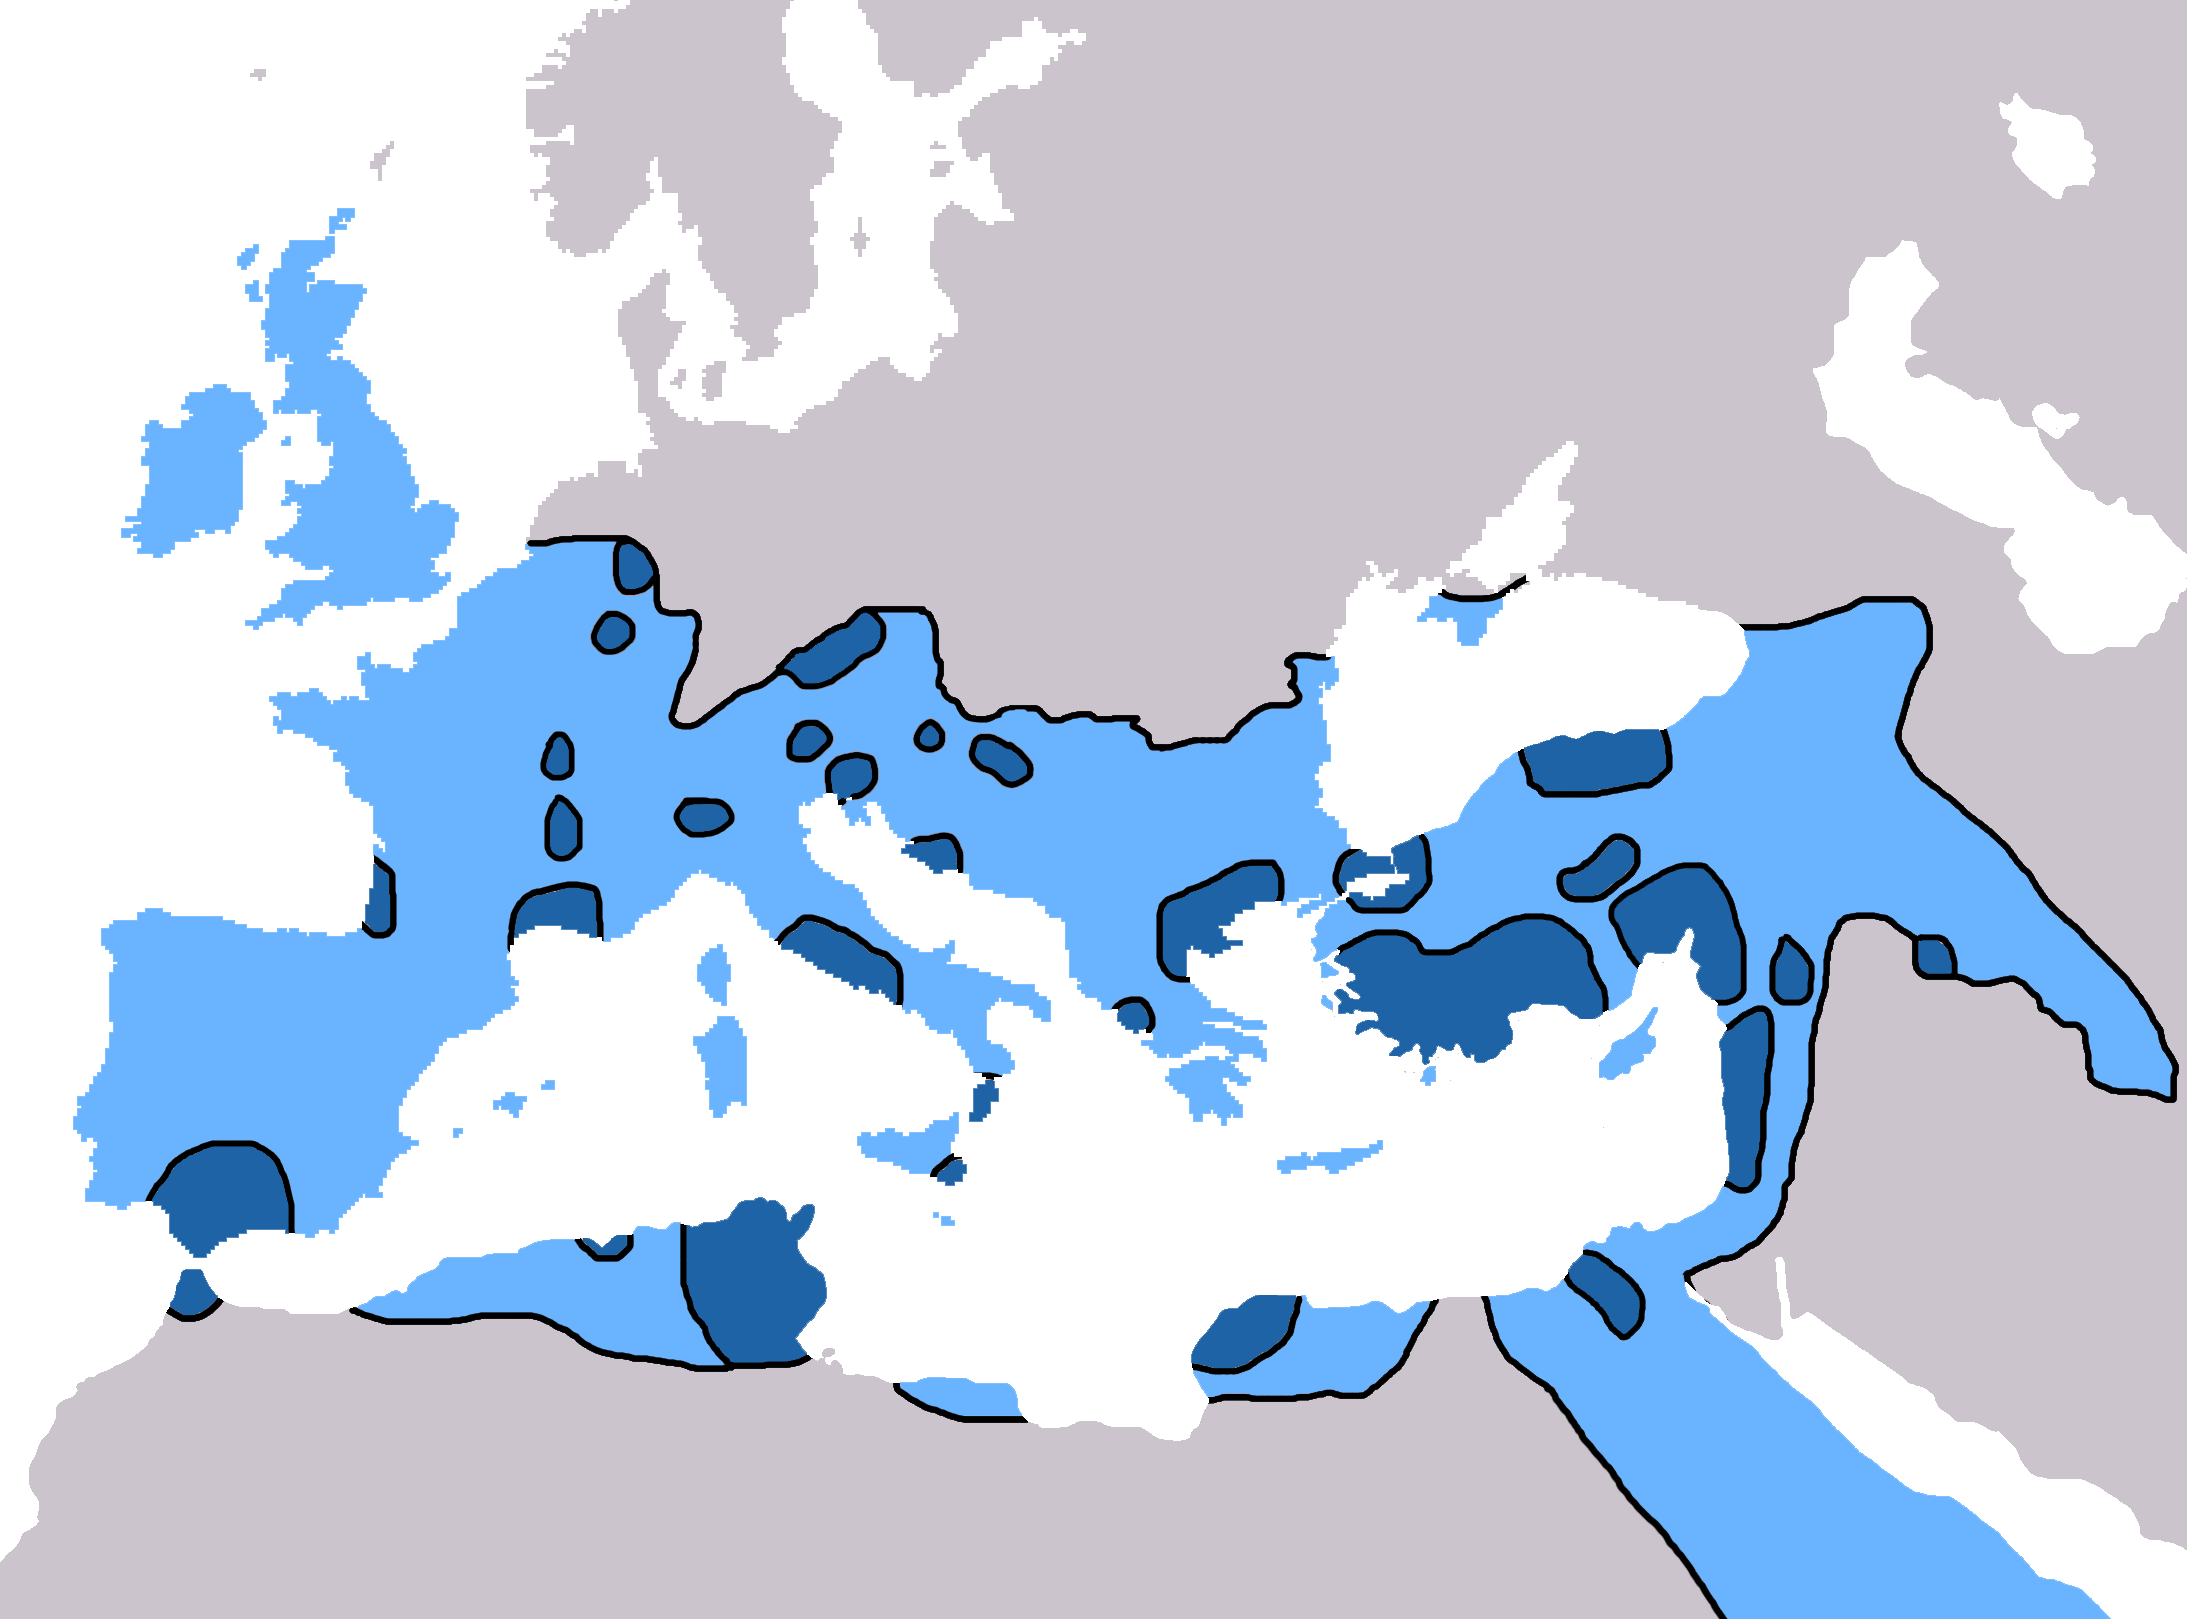 Spread of Christianity to ad